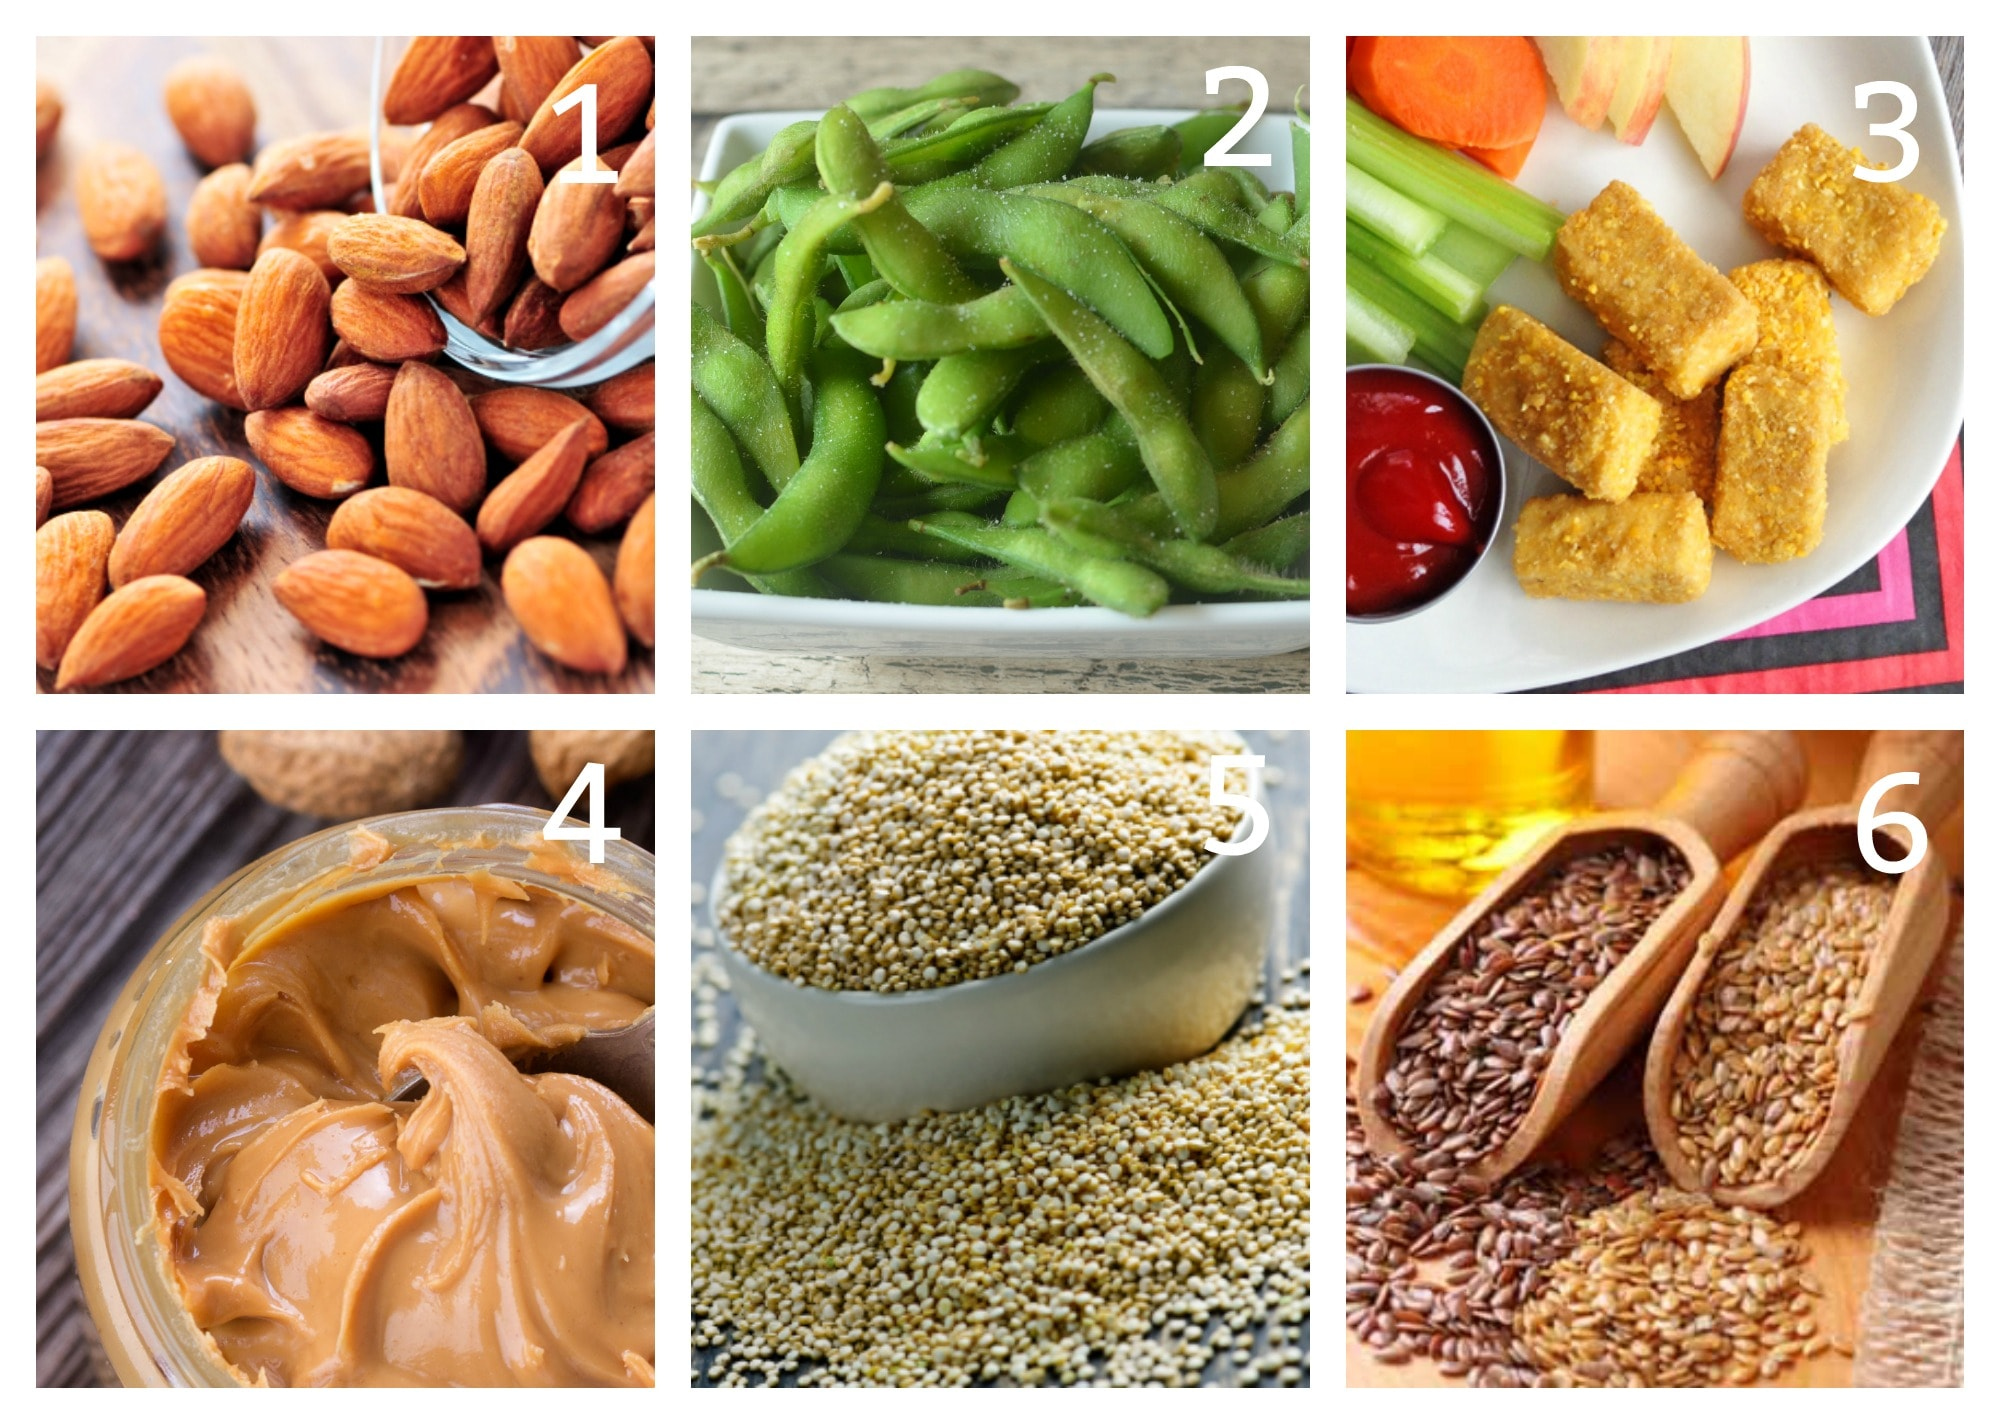 pics 6 Protein Sources That Aren't Meat